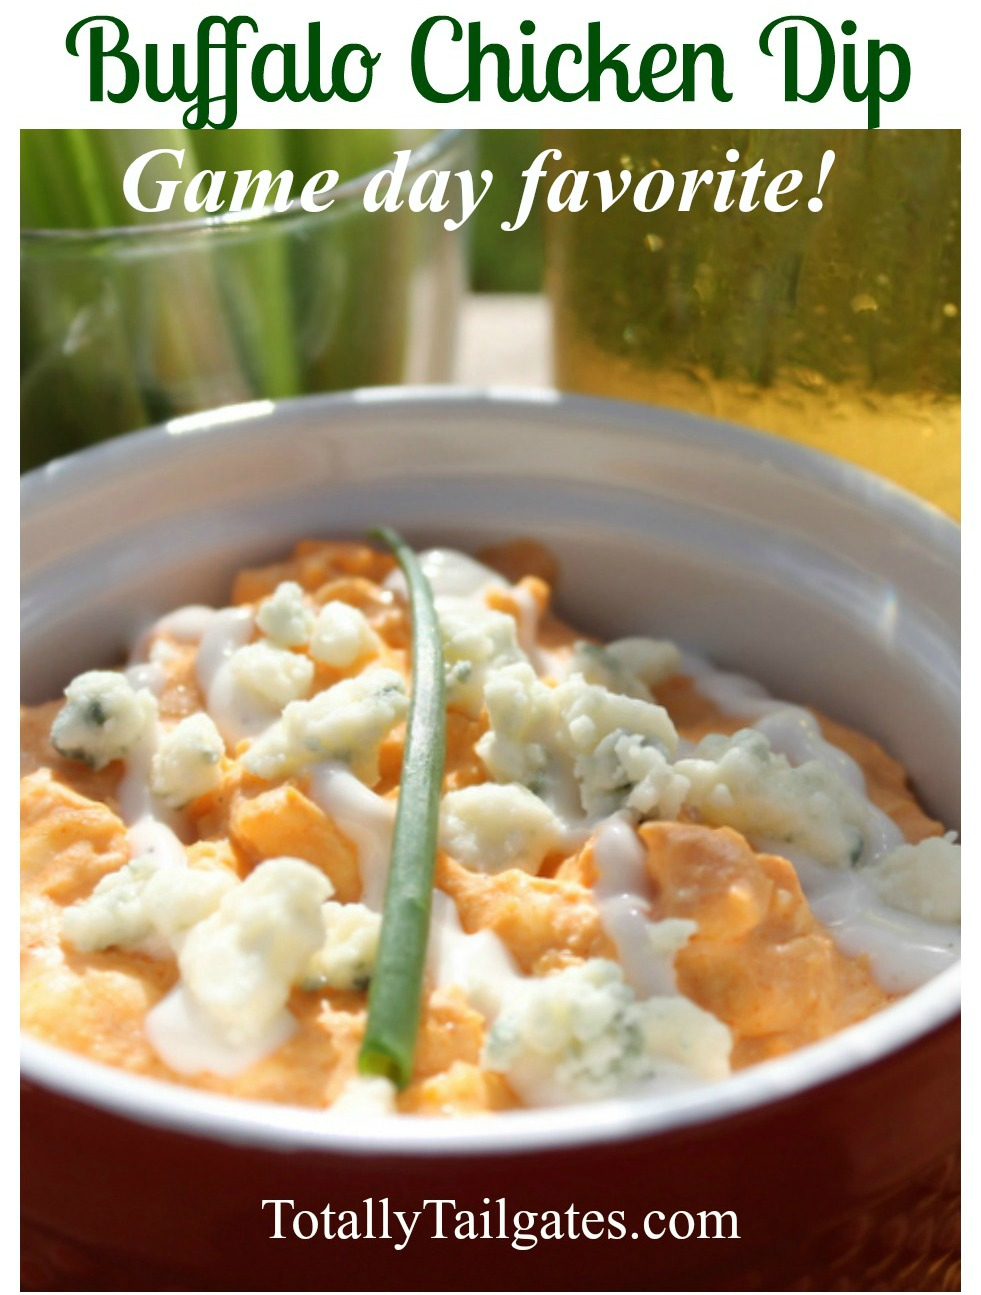 Game day classic appetizer! This Buffalo Chicken Dip recipe is the BEST!